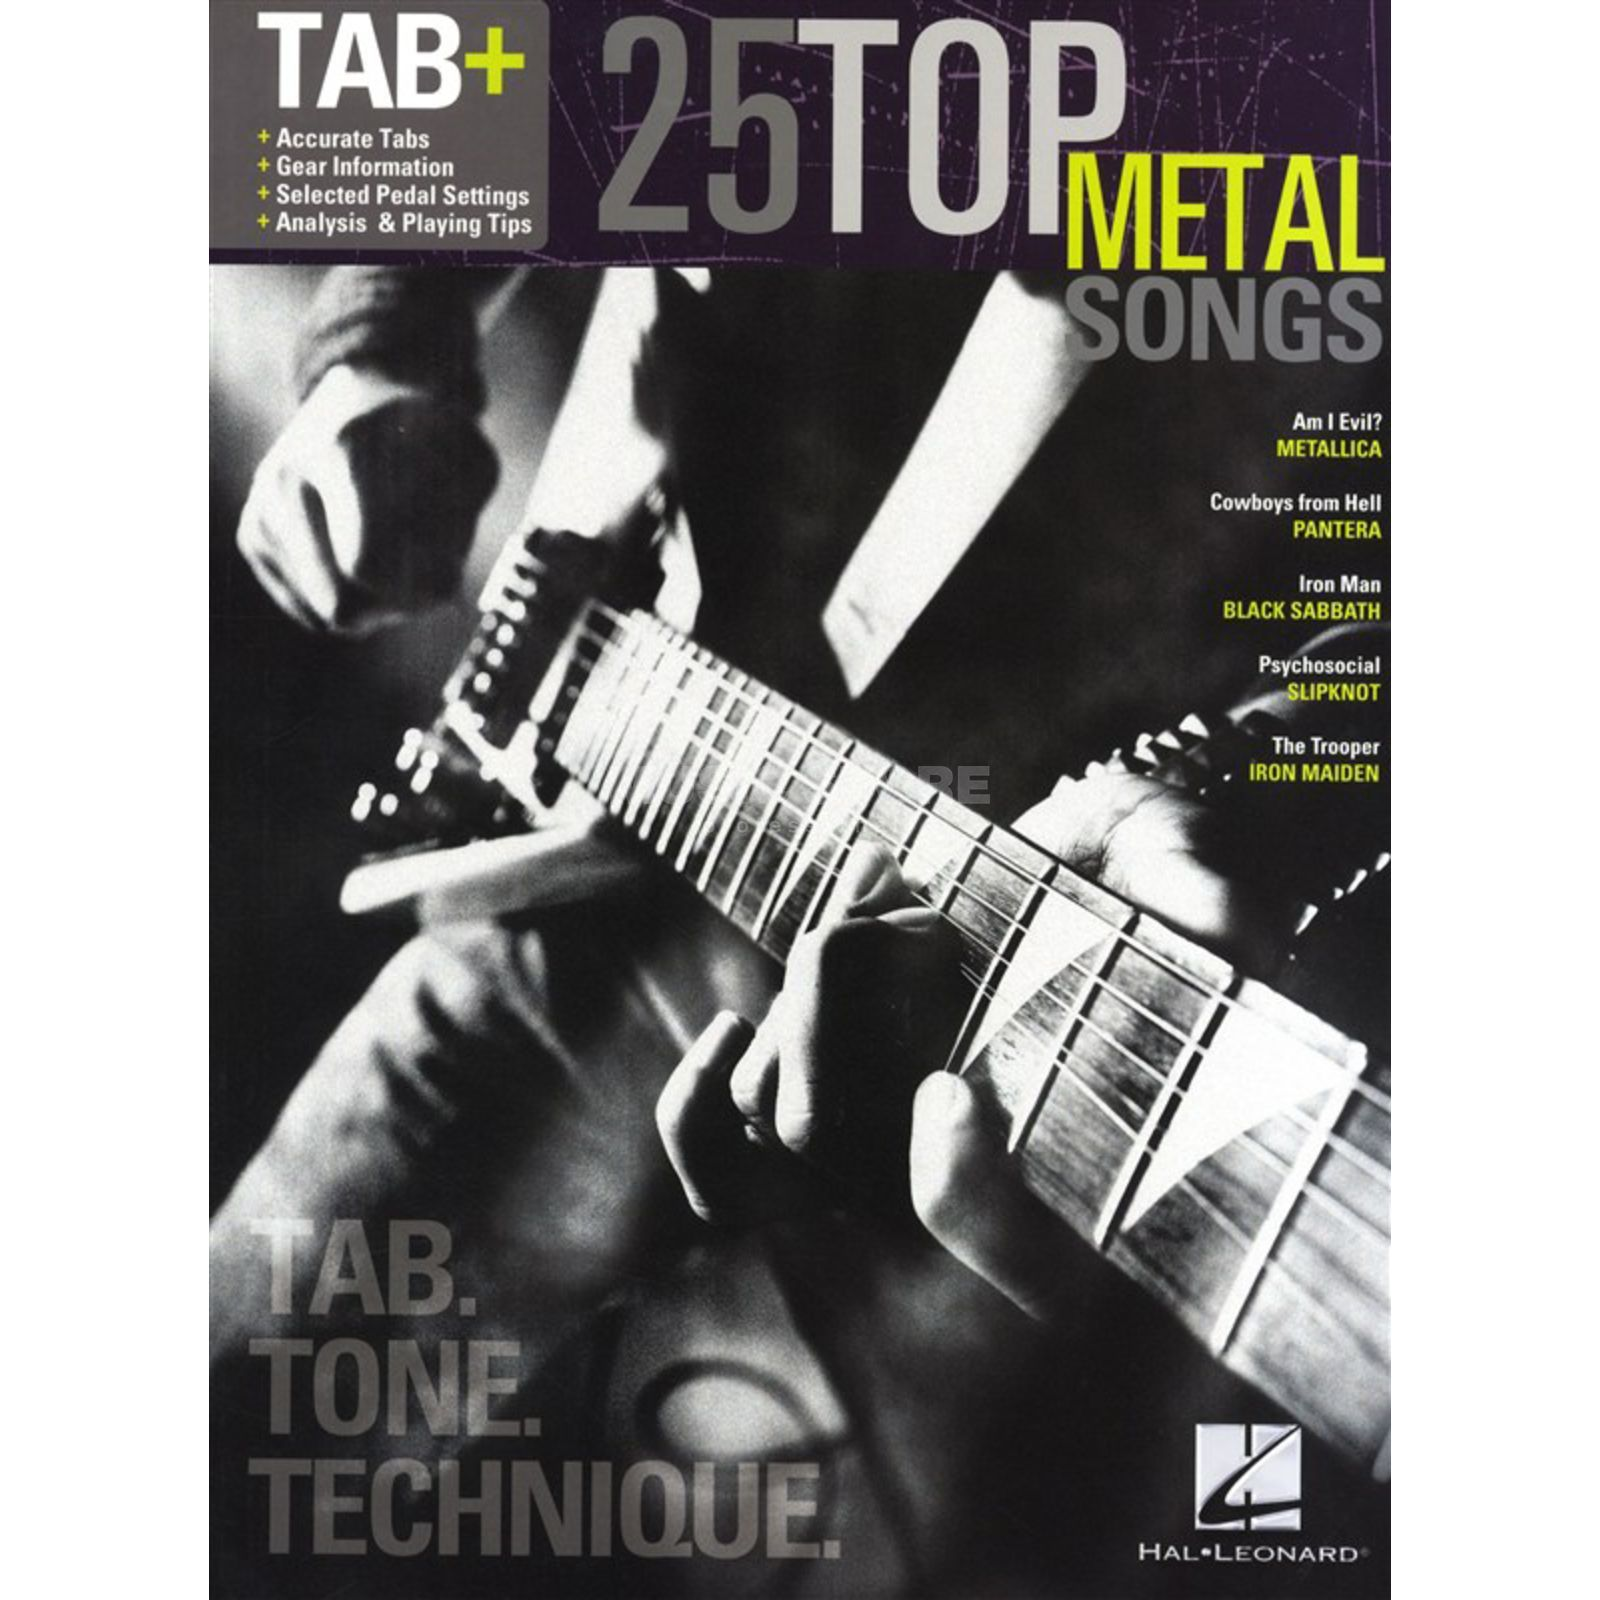 Hal Leonard Tab+: 25 Top Metal Songs Tab. Tone. Technique Produktbild